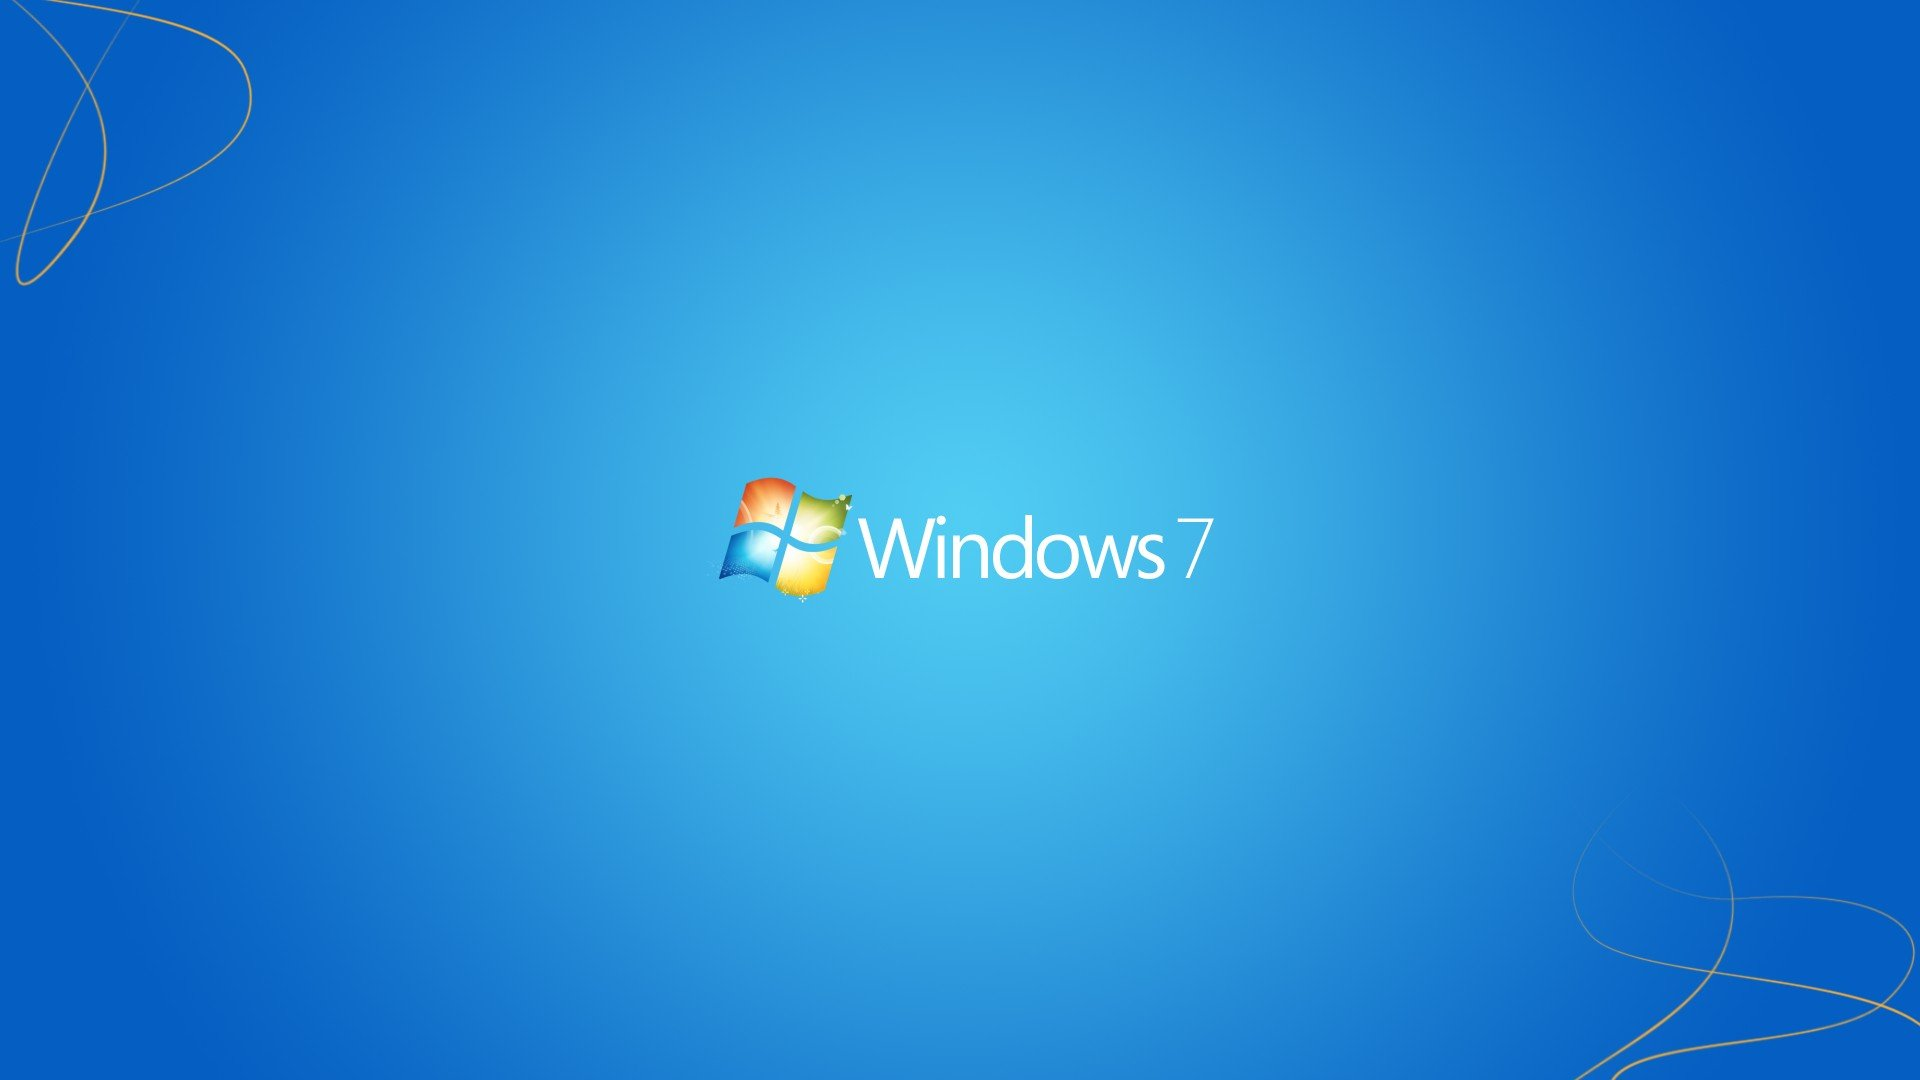 Windows 7 Wallpapers - Top Free Windows 7